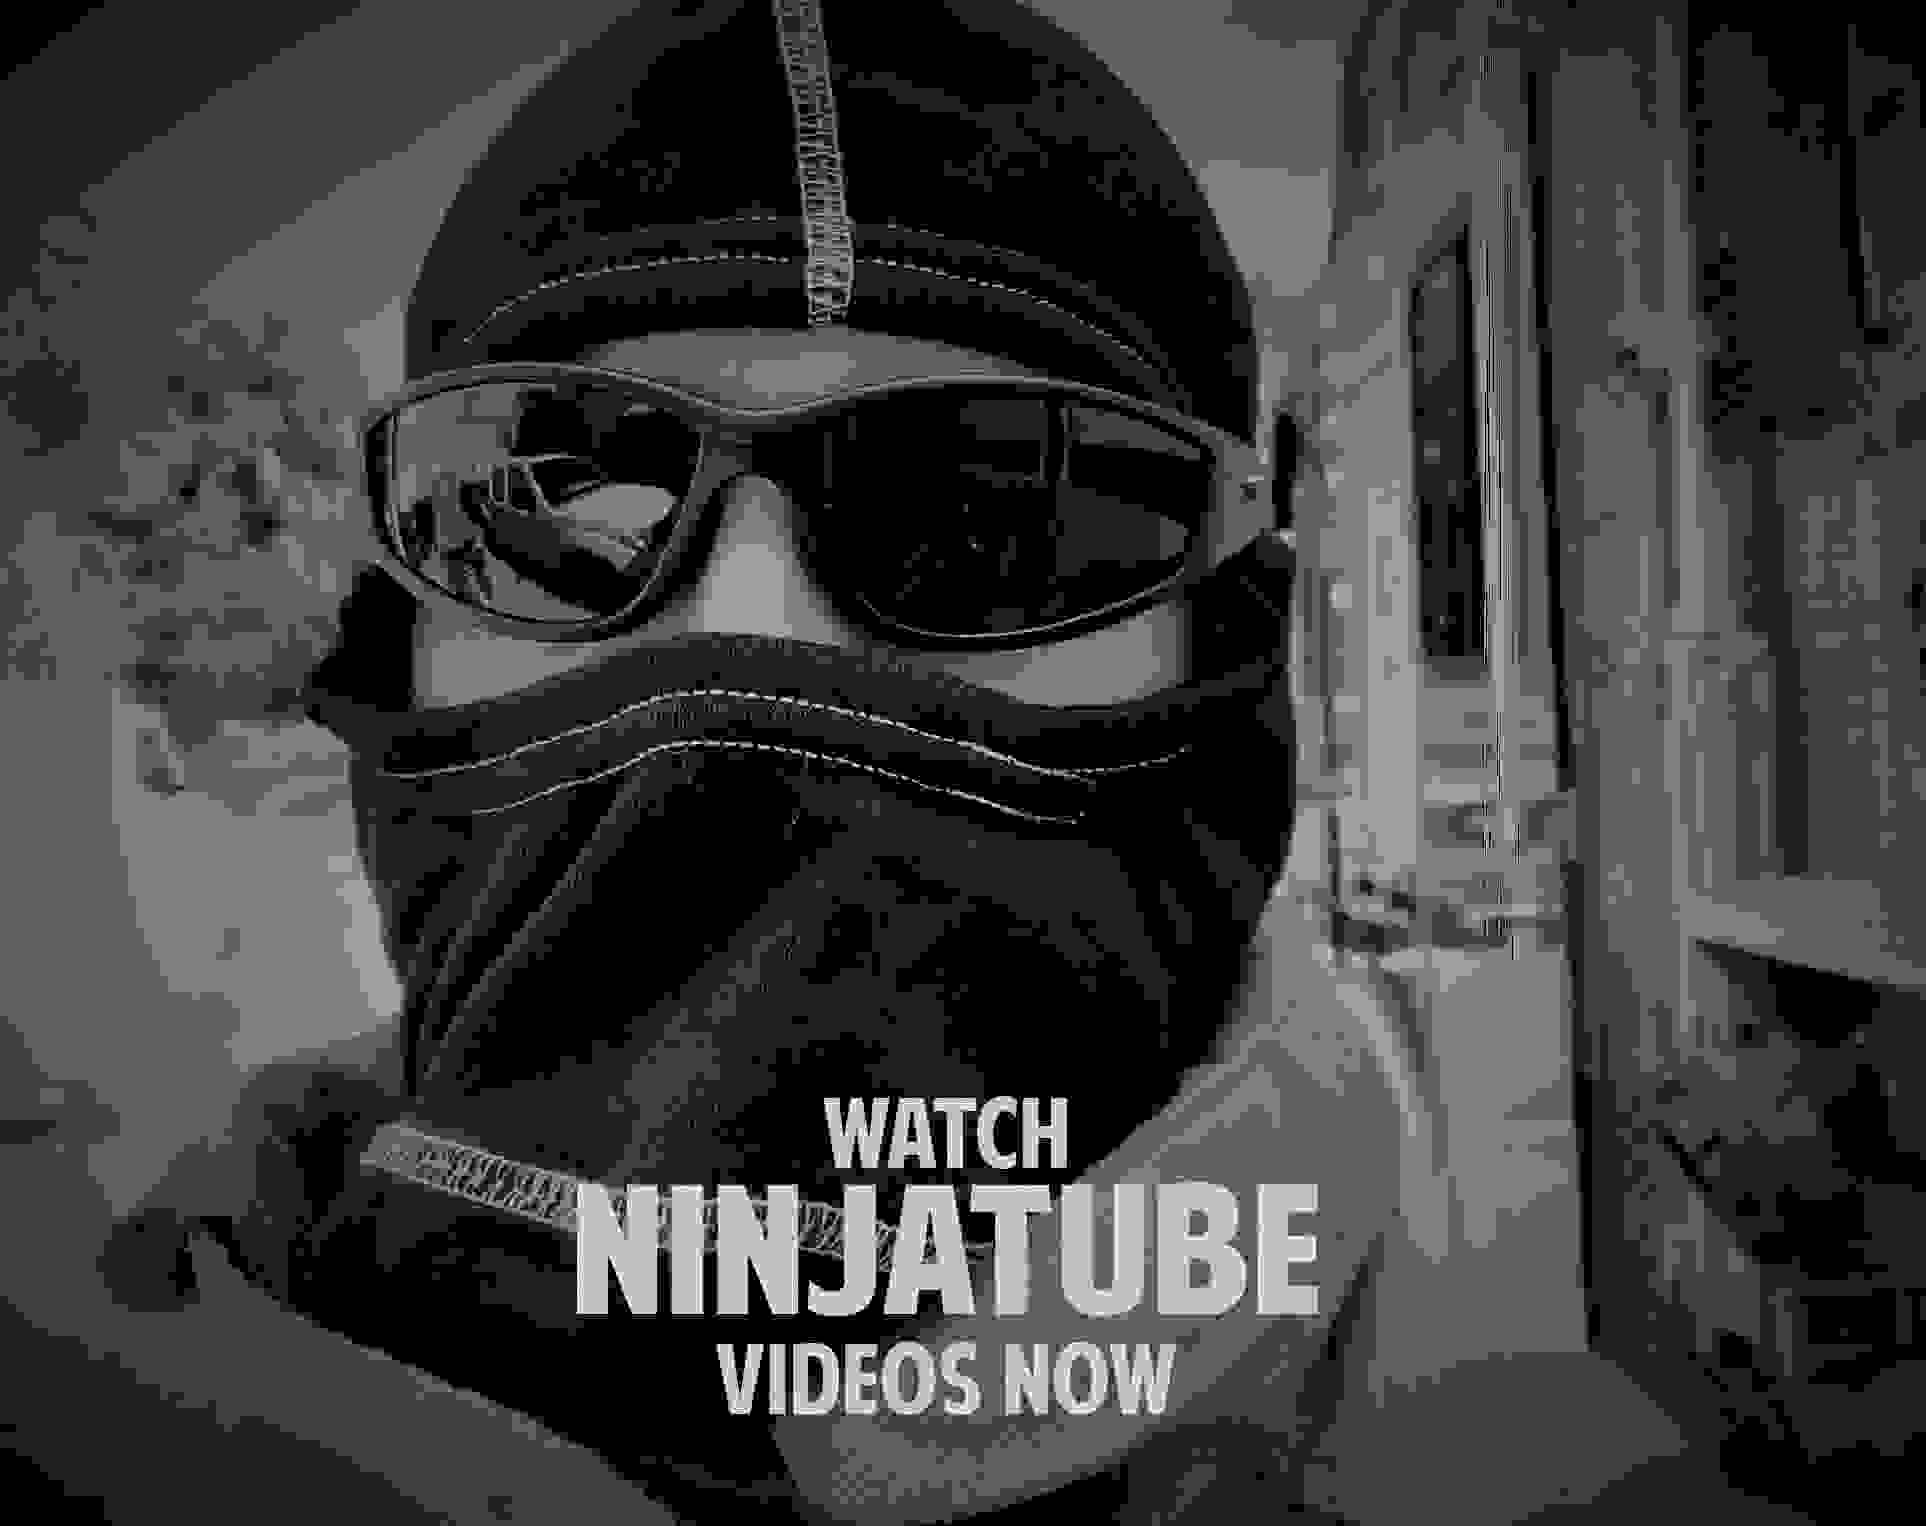 FIRE NINJA WITH ULTRAFLEX EYEWEAR - NINJATUBE